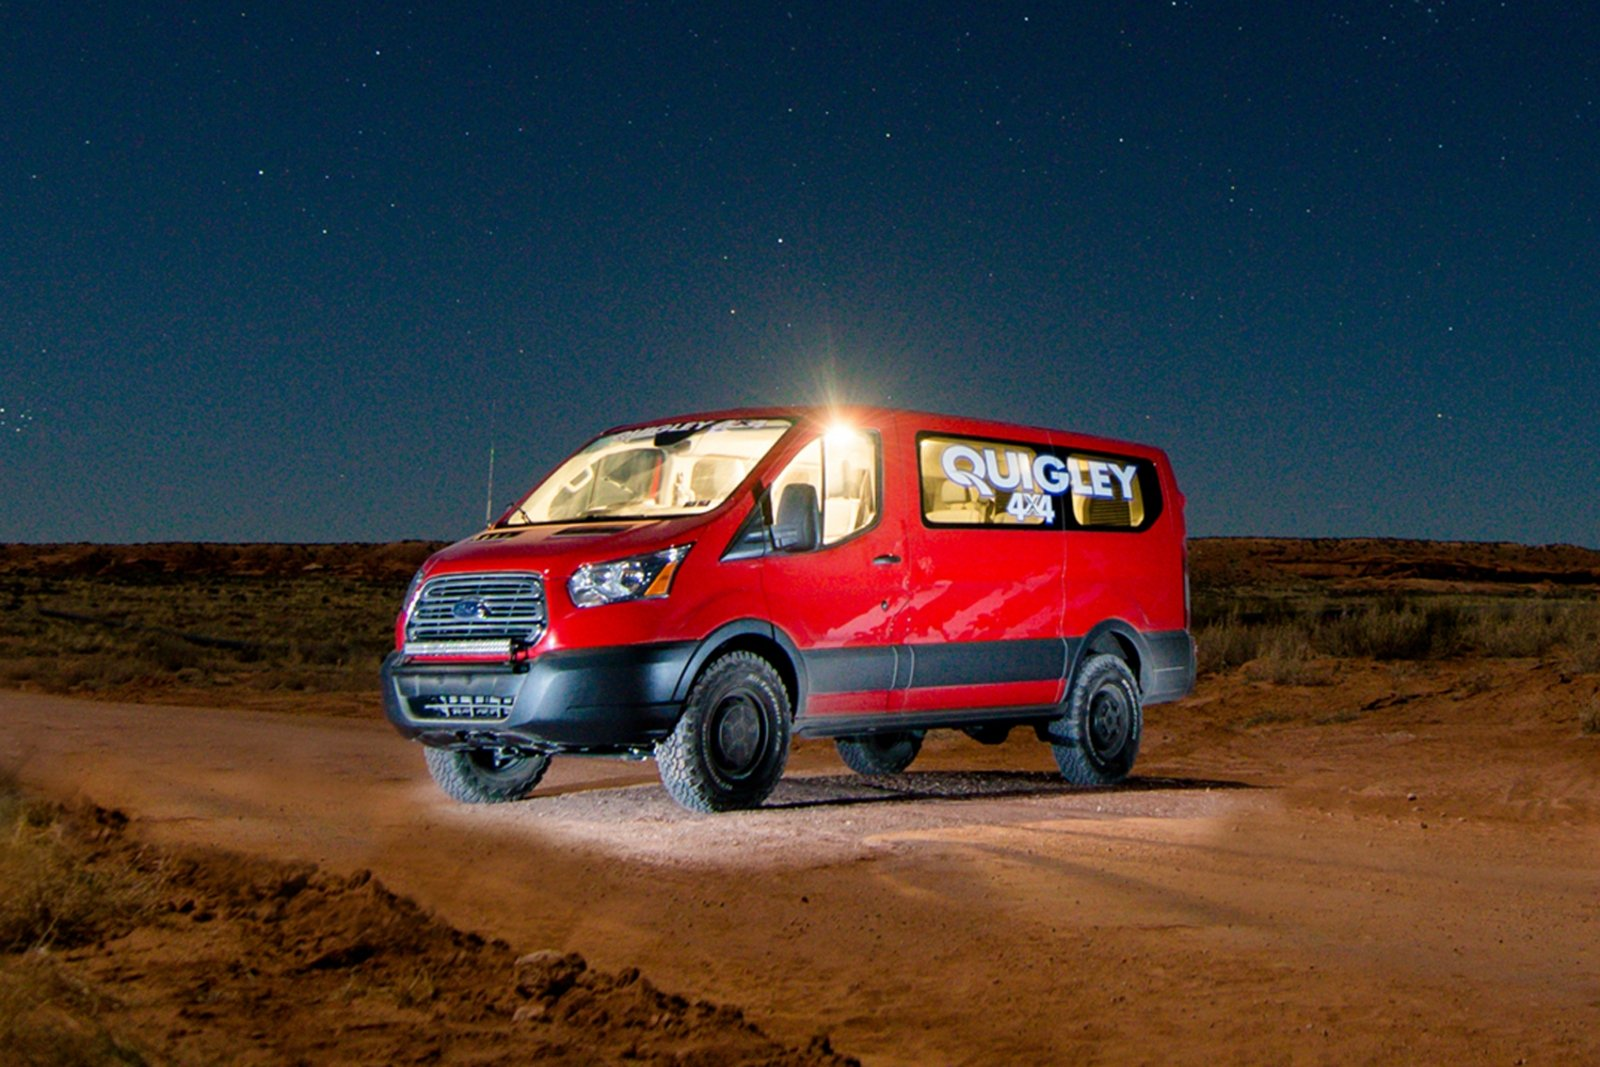 Quigley Motors U0026 39  4x4 Ford Transit Takes On The 2015 Easter